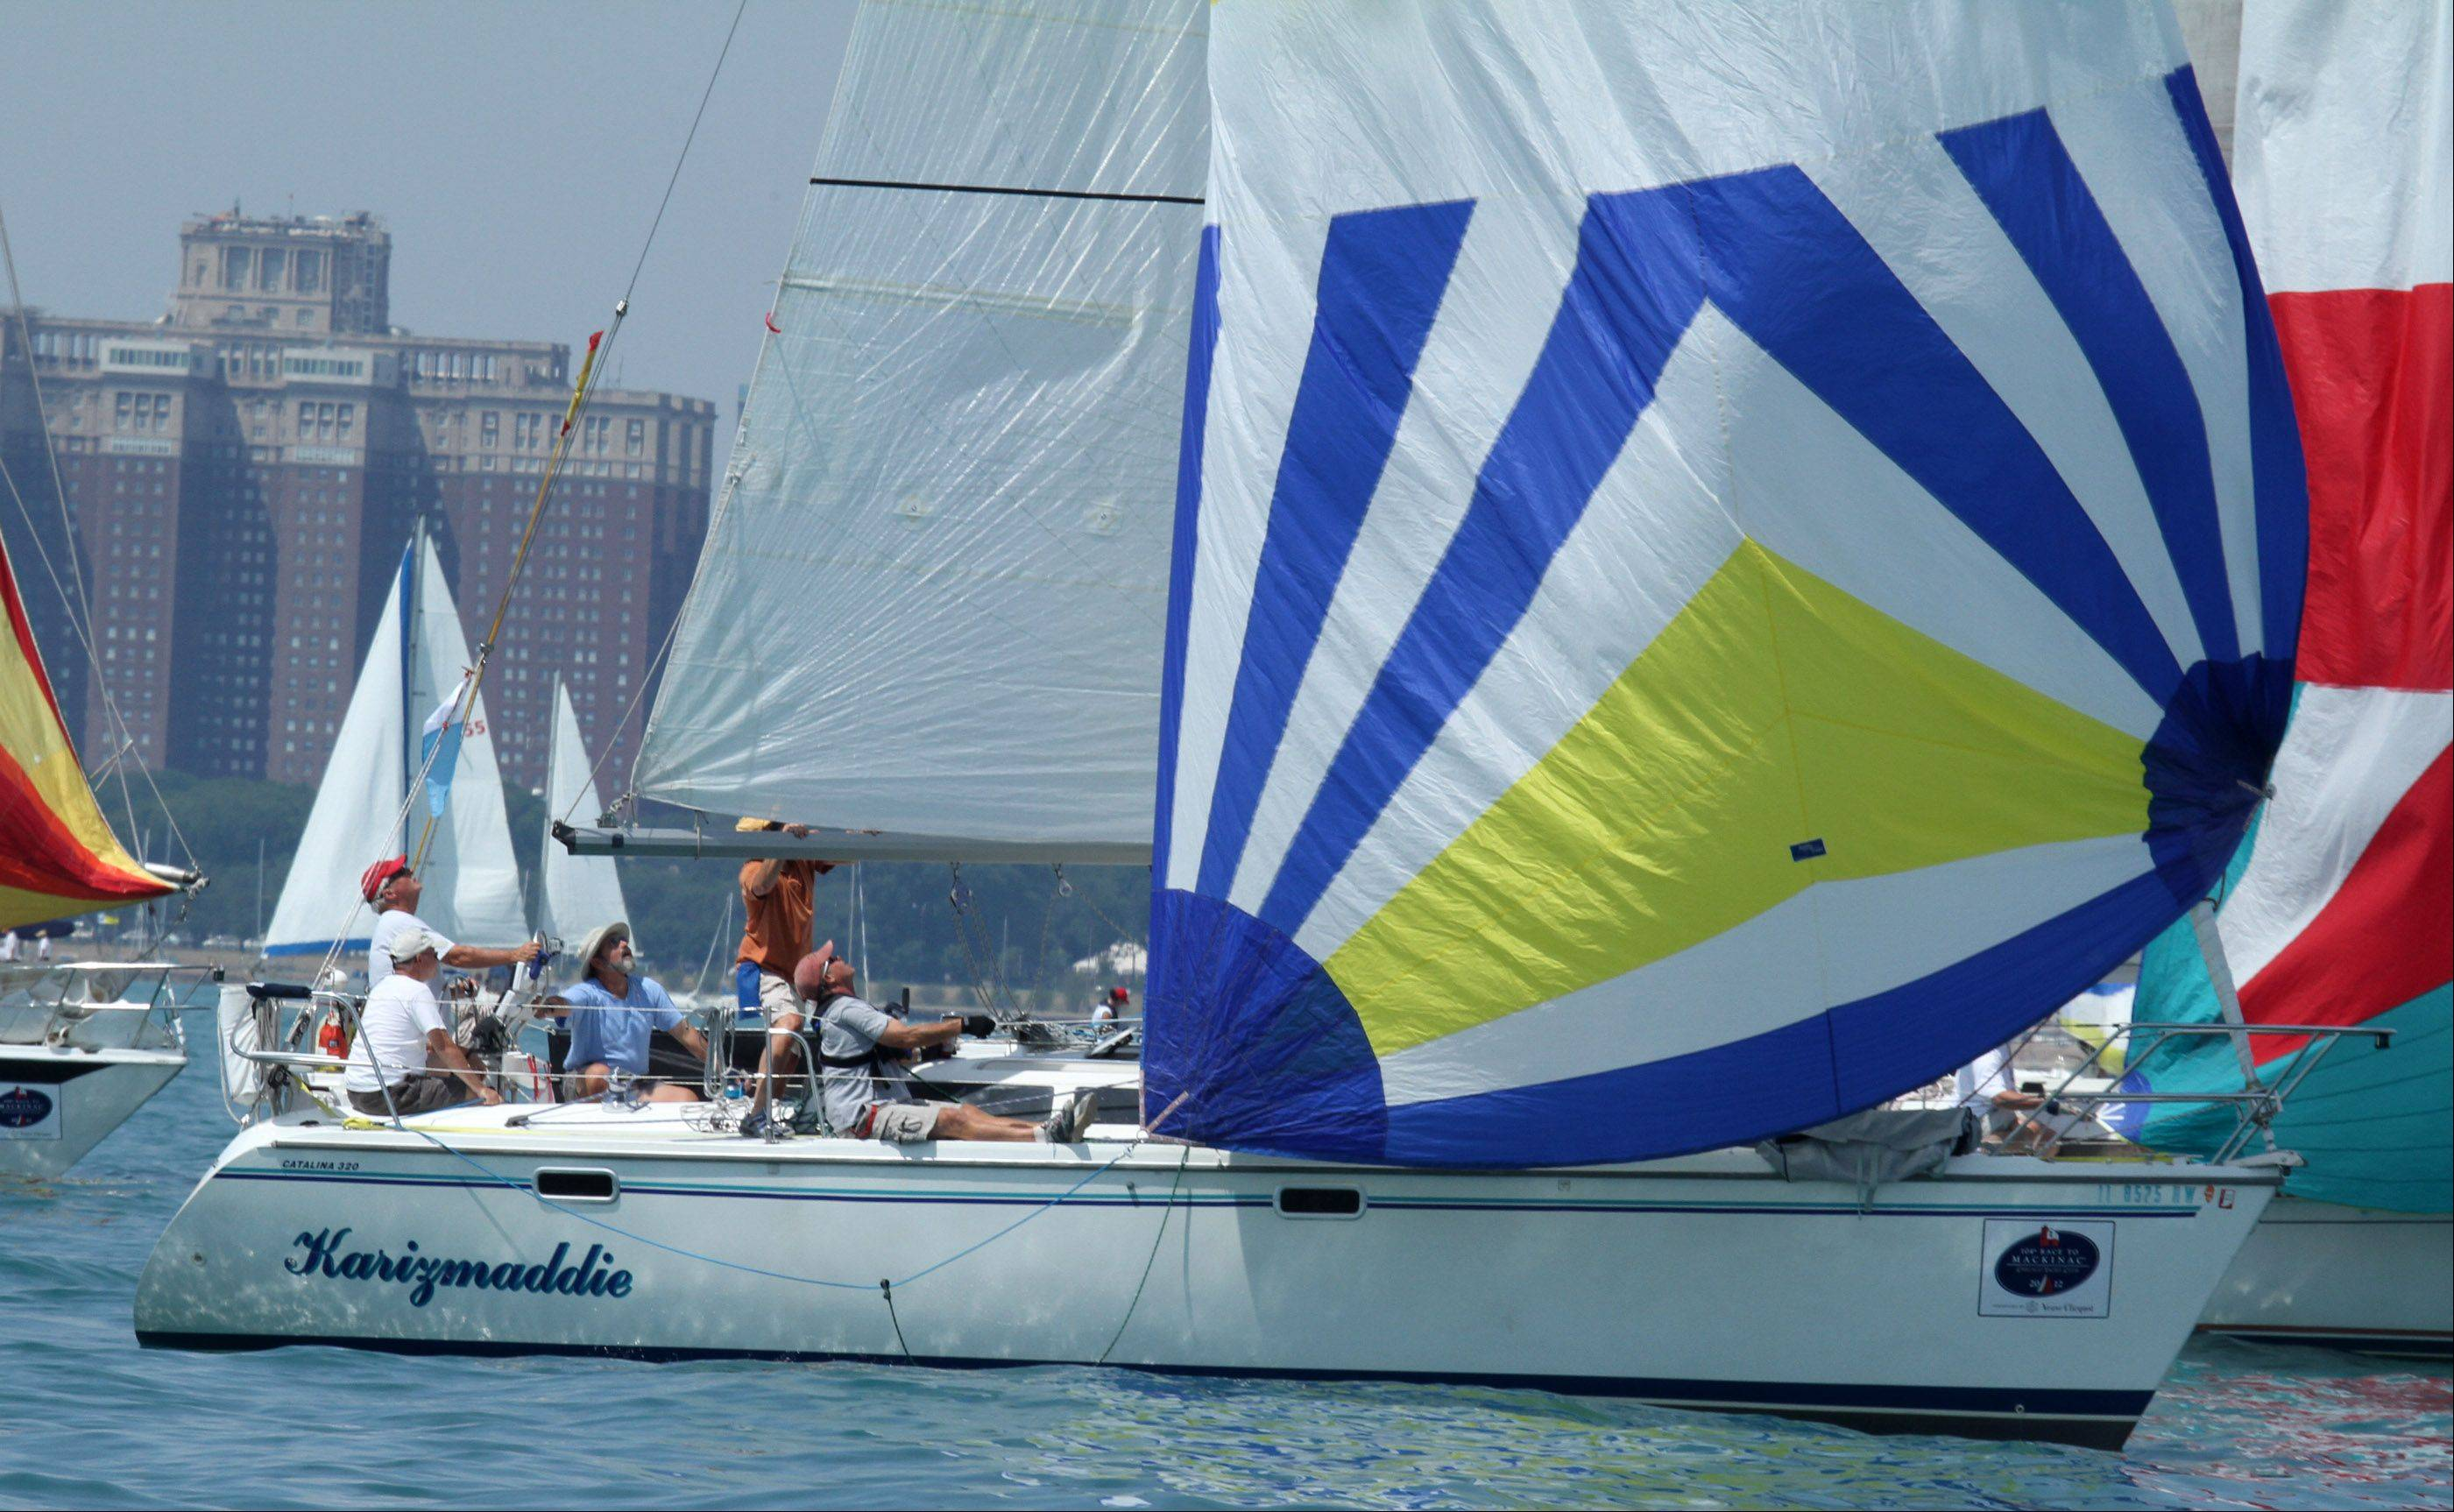 Crew of the Karizmaddie, USA 50662, owned by Patrick Reynolds and Linda Sadlowski, of Chicago, with Hammond Yacht Club get wind int the sail at the start of the 104th Chicago Yacht Club Race to Mackinac on Lake Michigan near Chicago on Saturday, July 21.